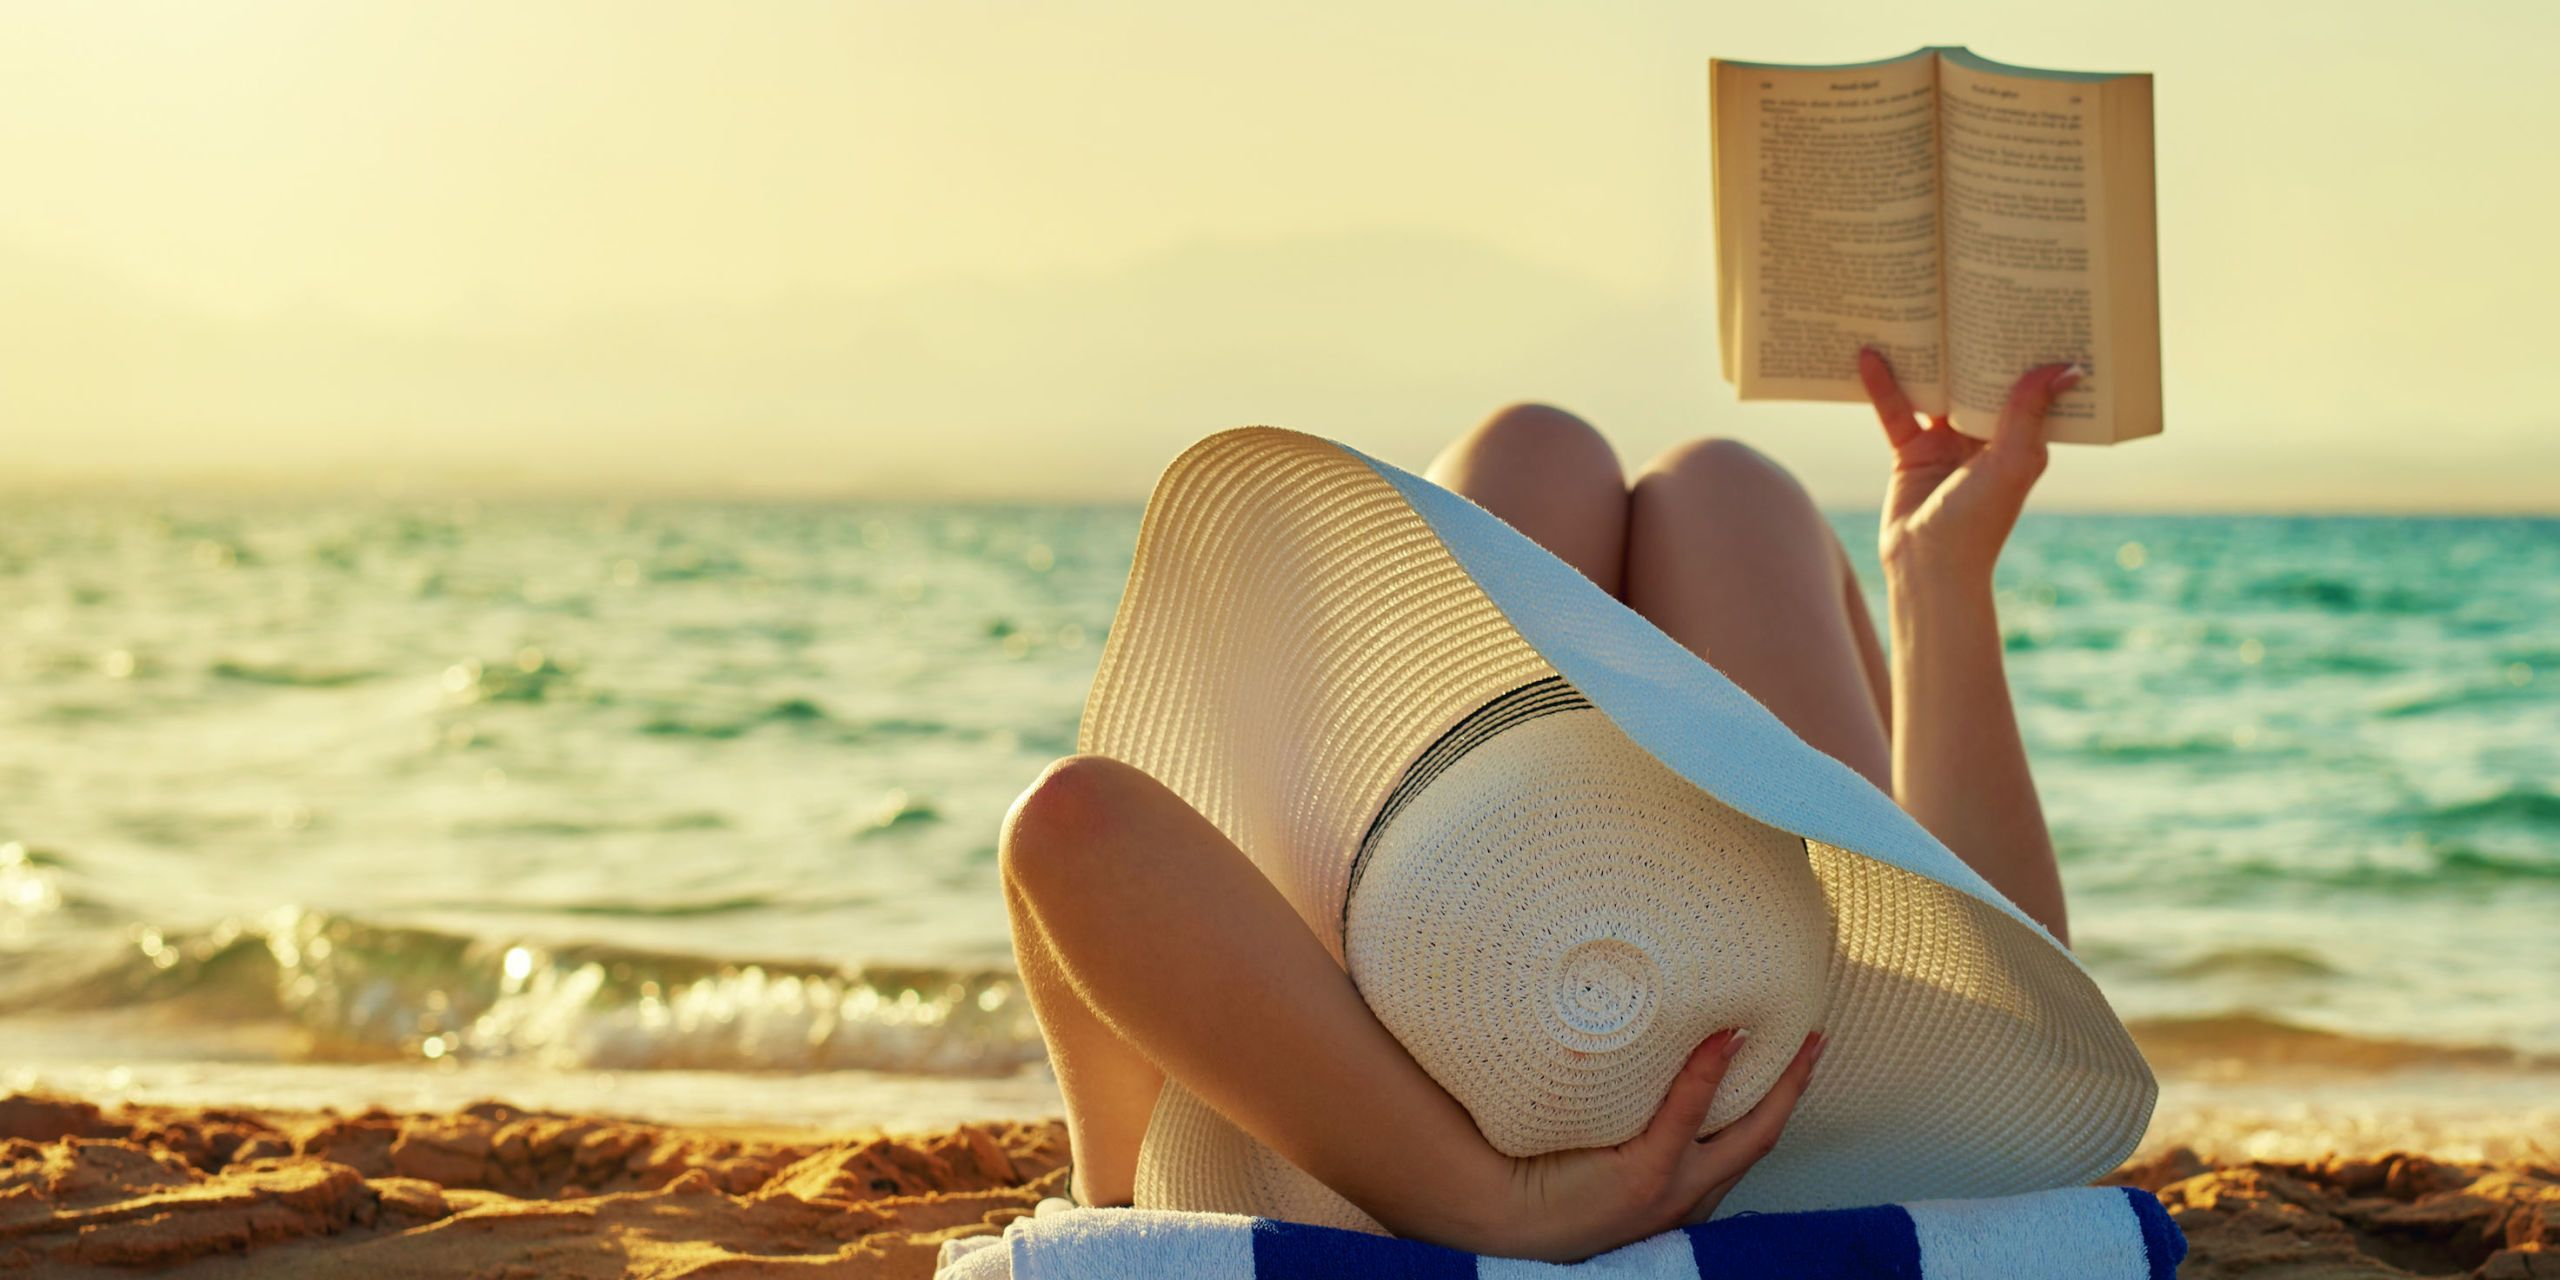 5 Books That Will Make You Happier, According to Bibliotherapists